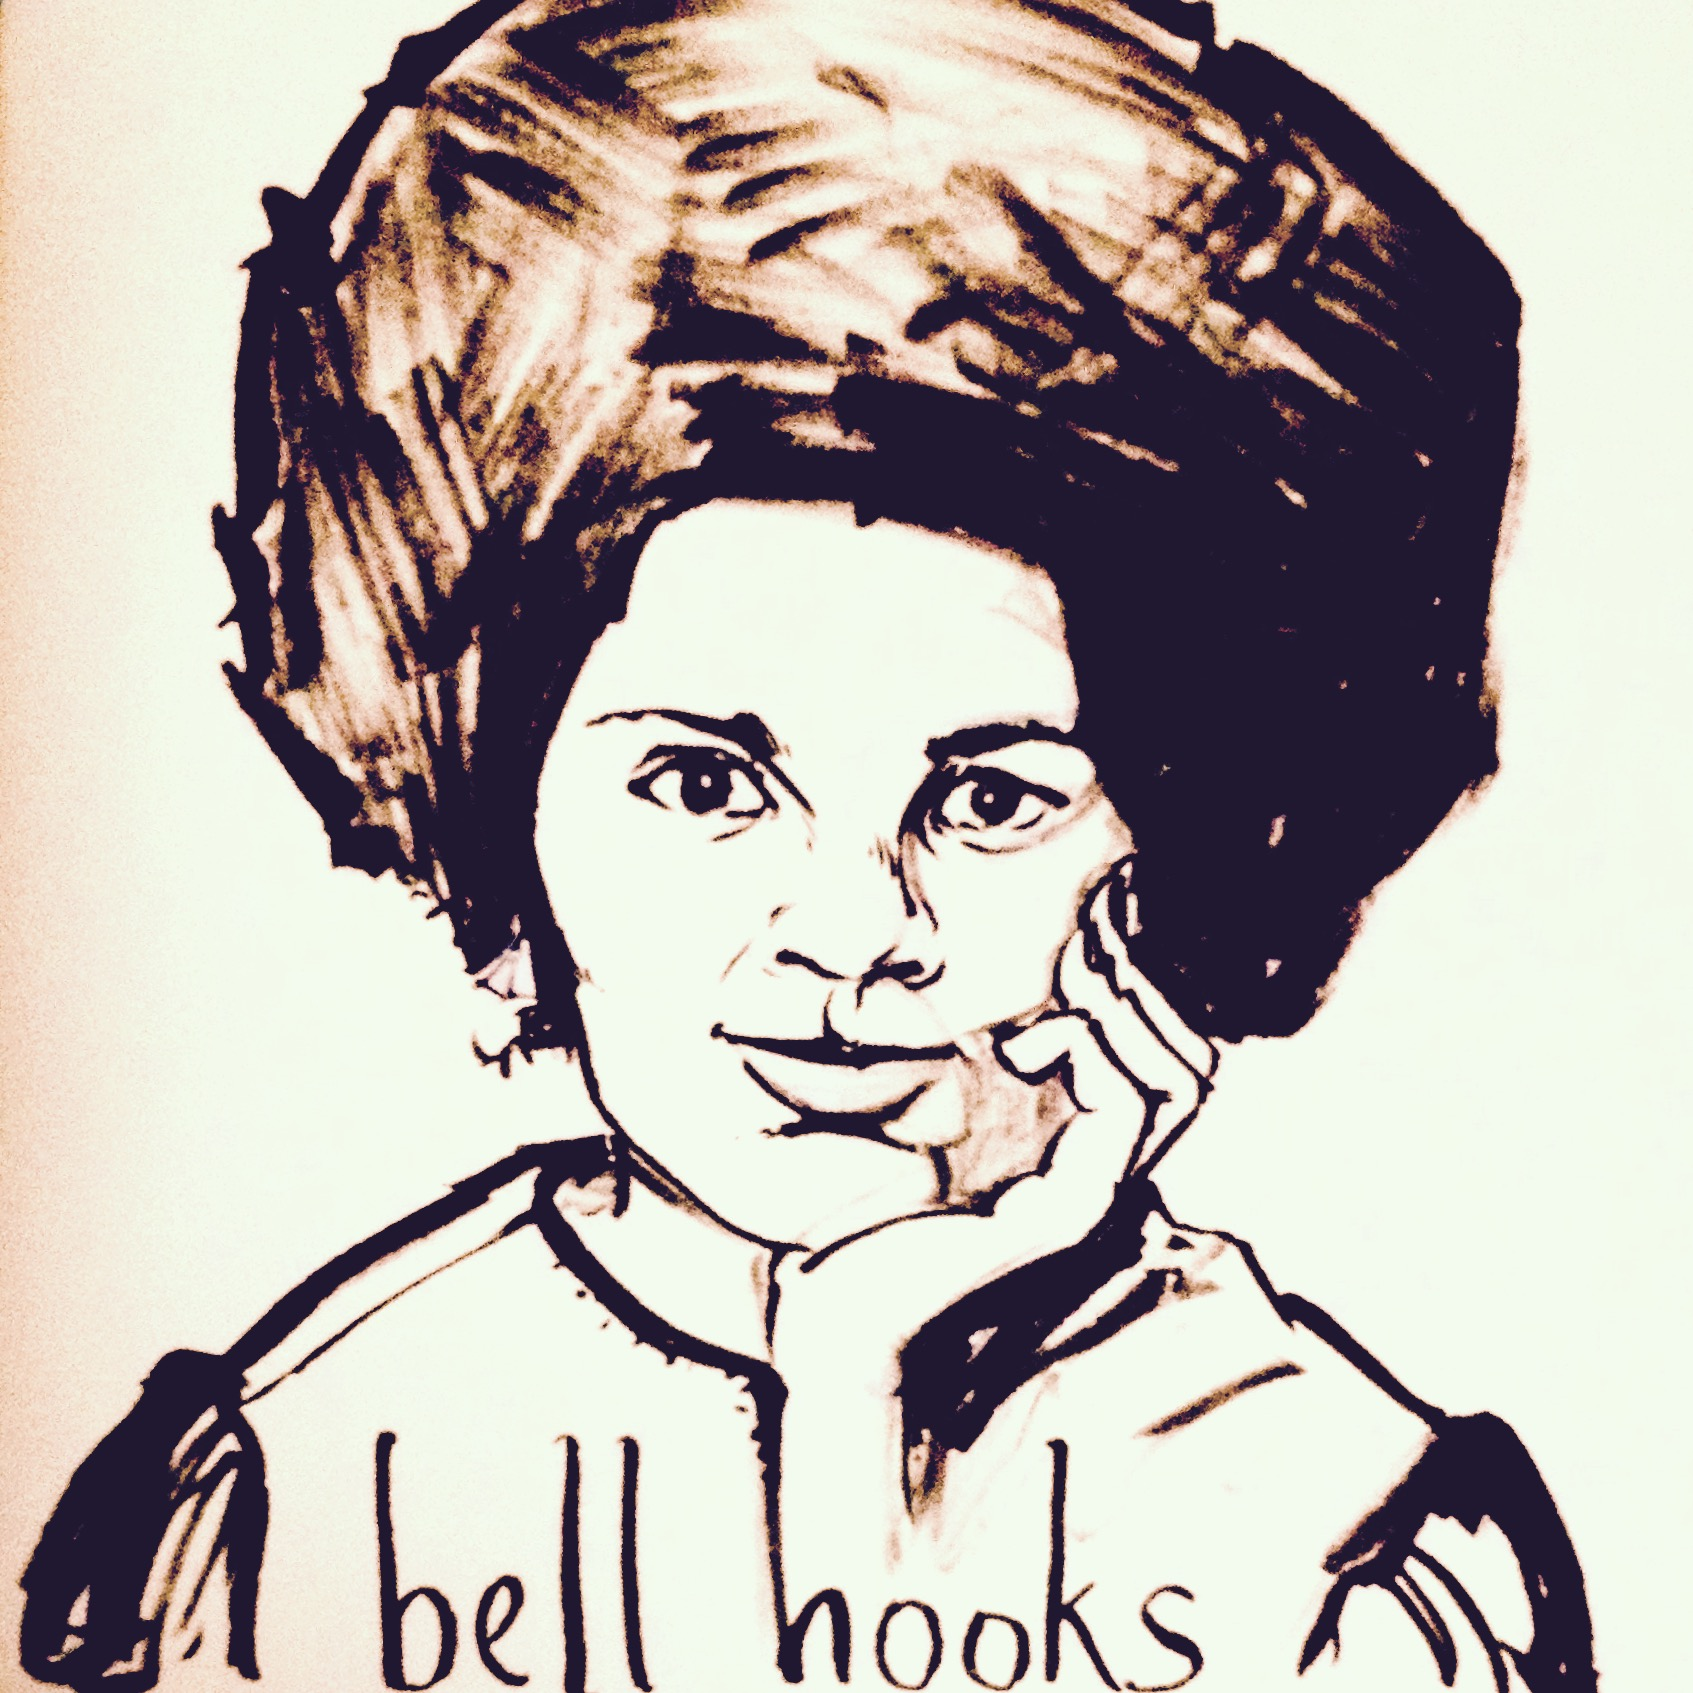 001 Bell Hooks Essays Essay Example Best Keeping Close To Home Feminism Full